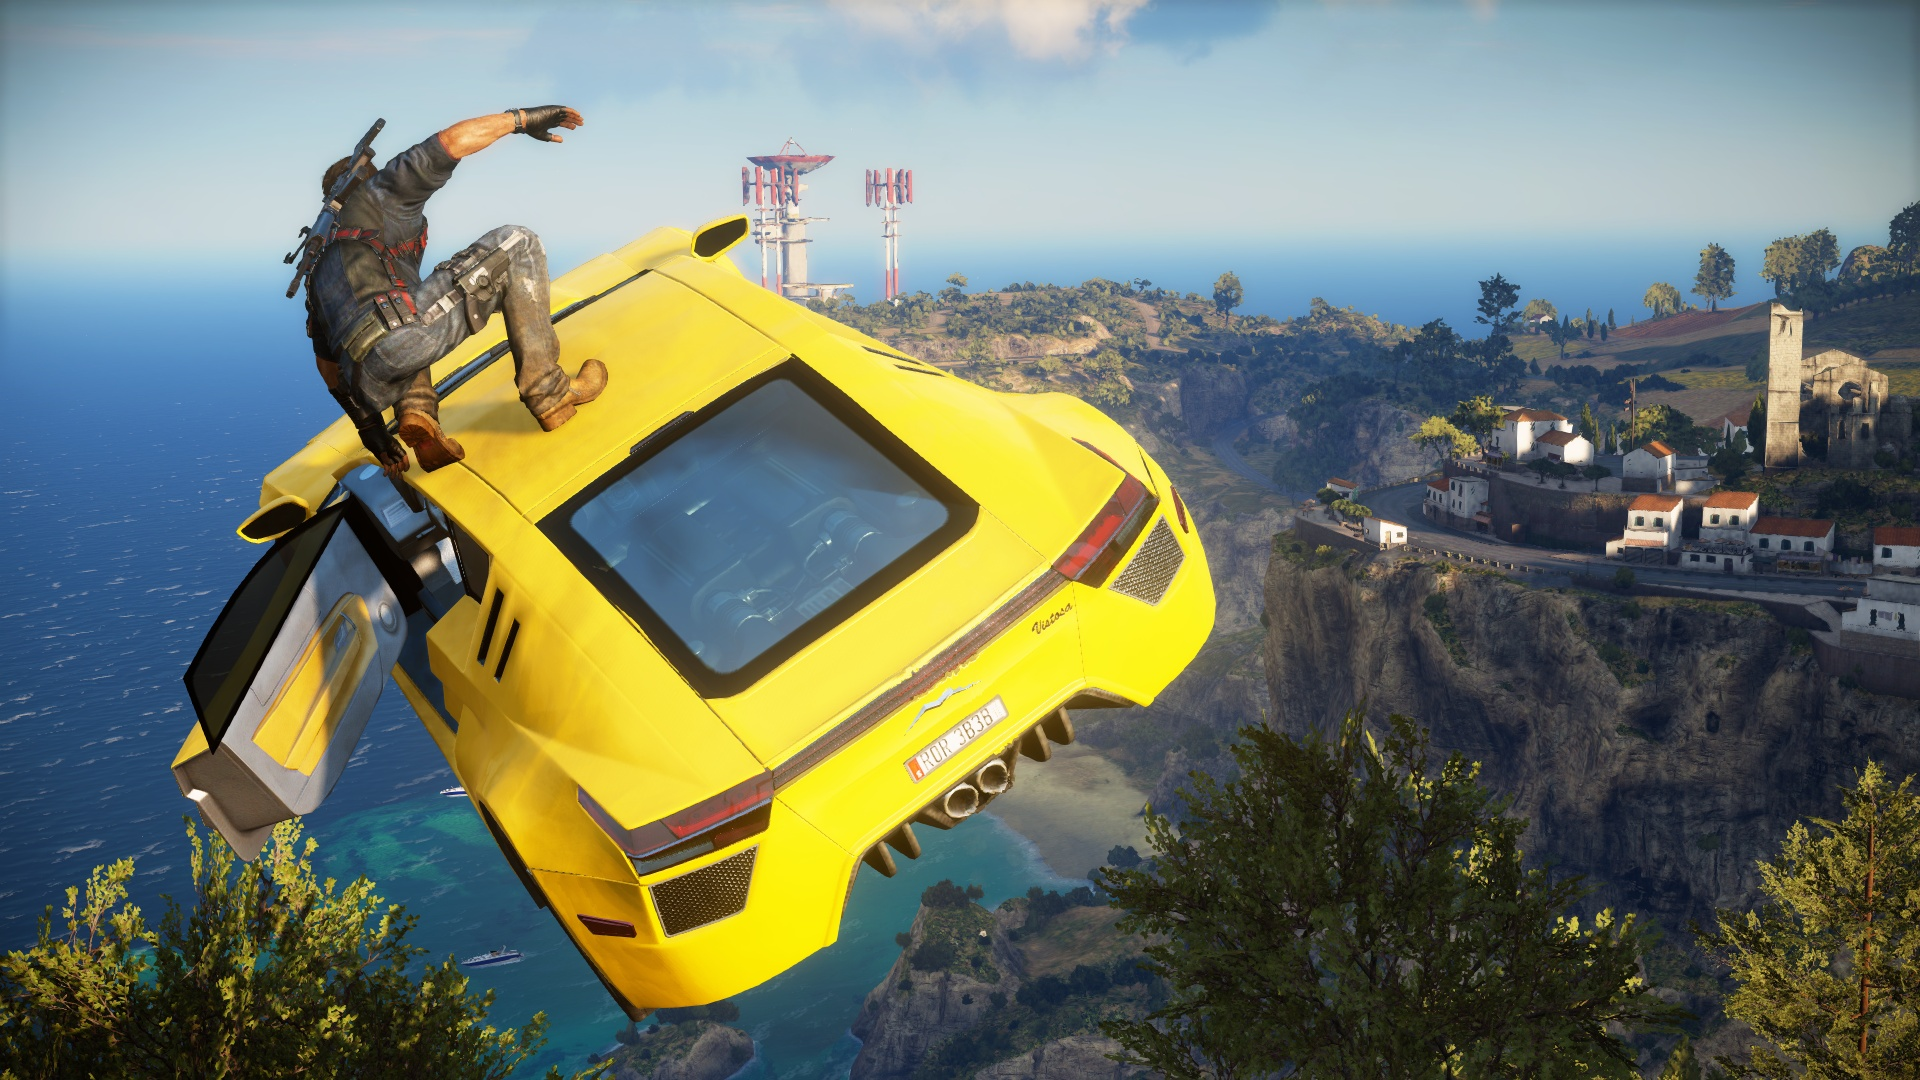 Distruzione Totale e Divertimento in due parole - Just Cause 3